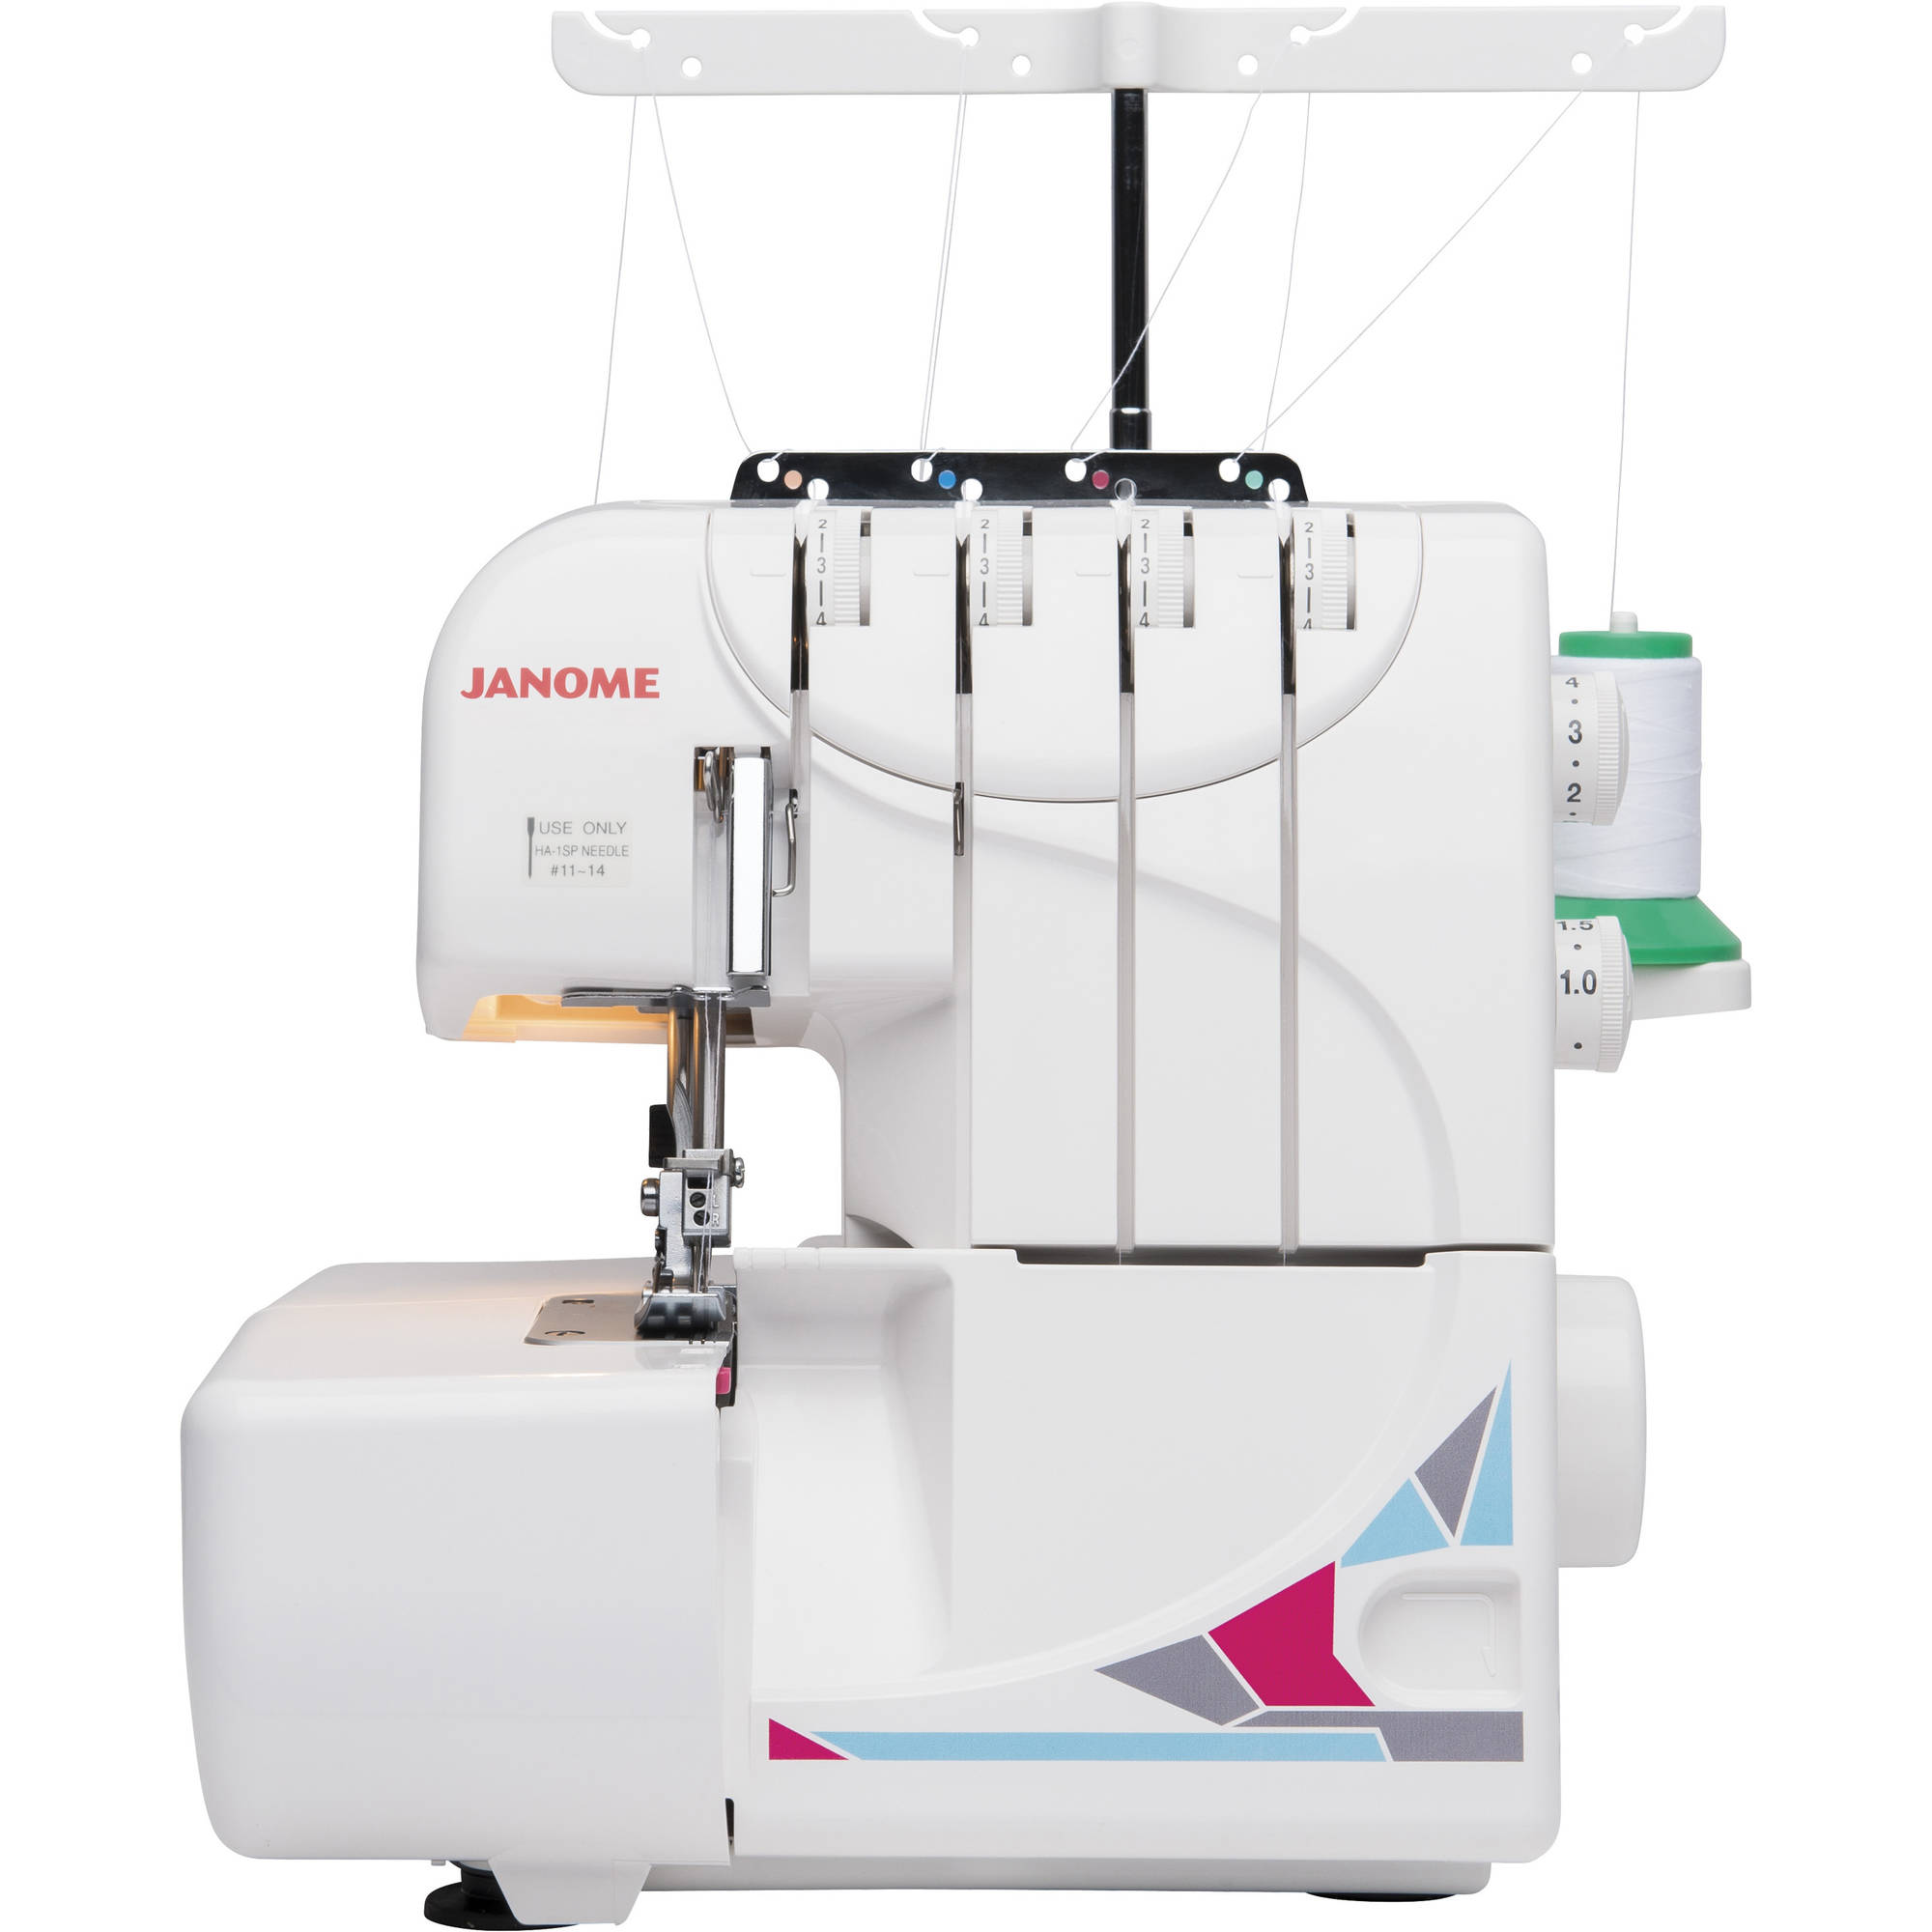 Serger Threading Diagram Trusted Wiring Diagrams Sewusa Janome Mod 8933 Overlock With Lay In Wide Open Juki